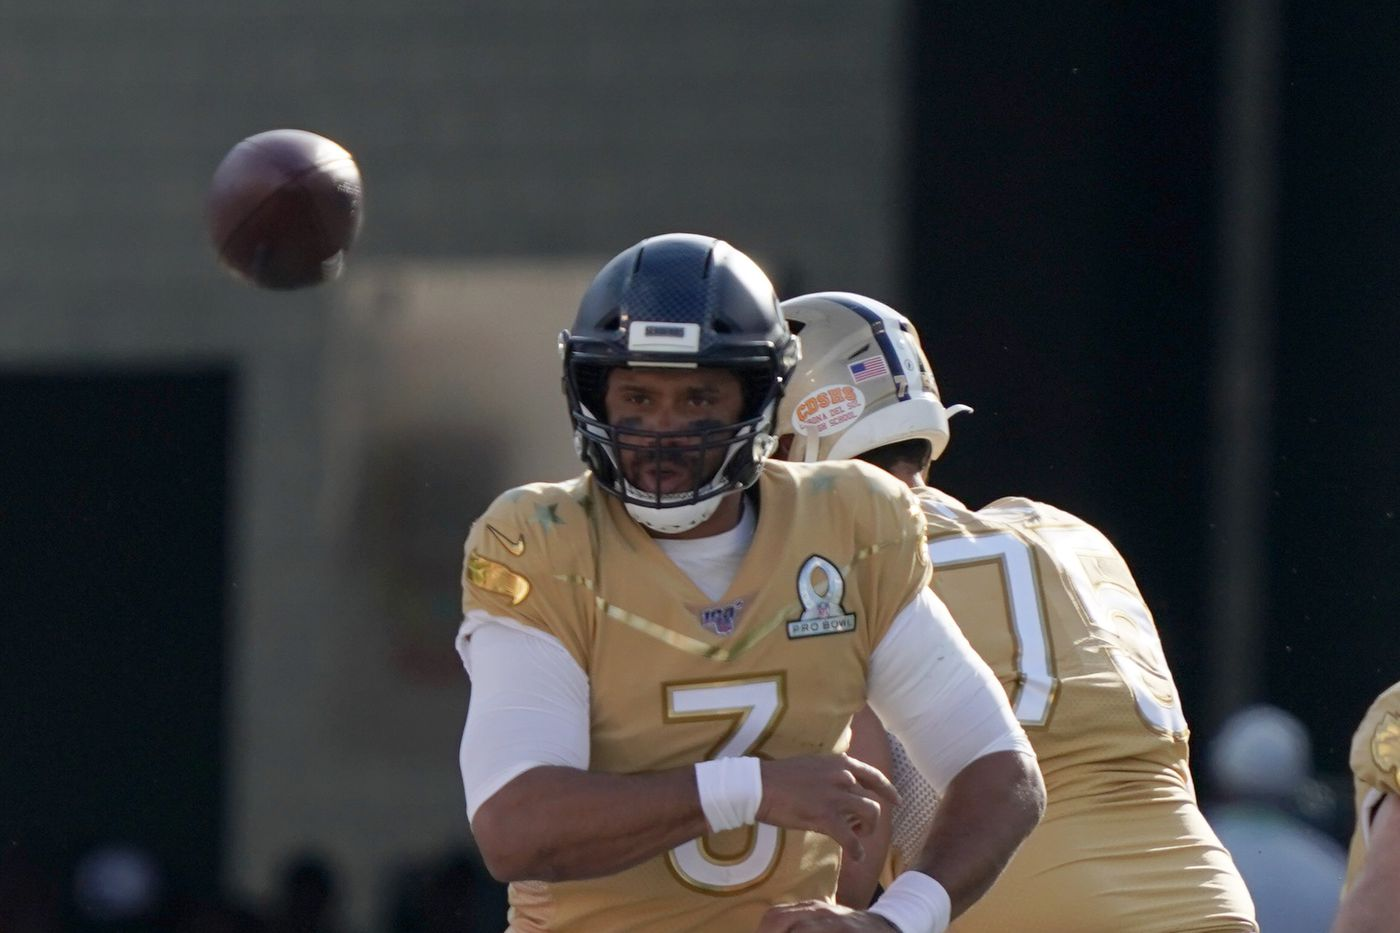 2020 Pro Bowl: Russell Wilson throws touchdown in NFC's 38-33 loss ...